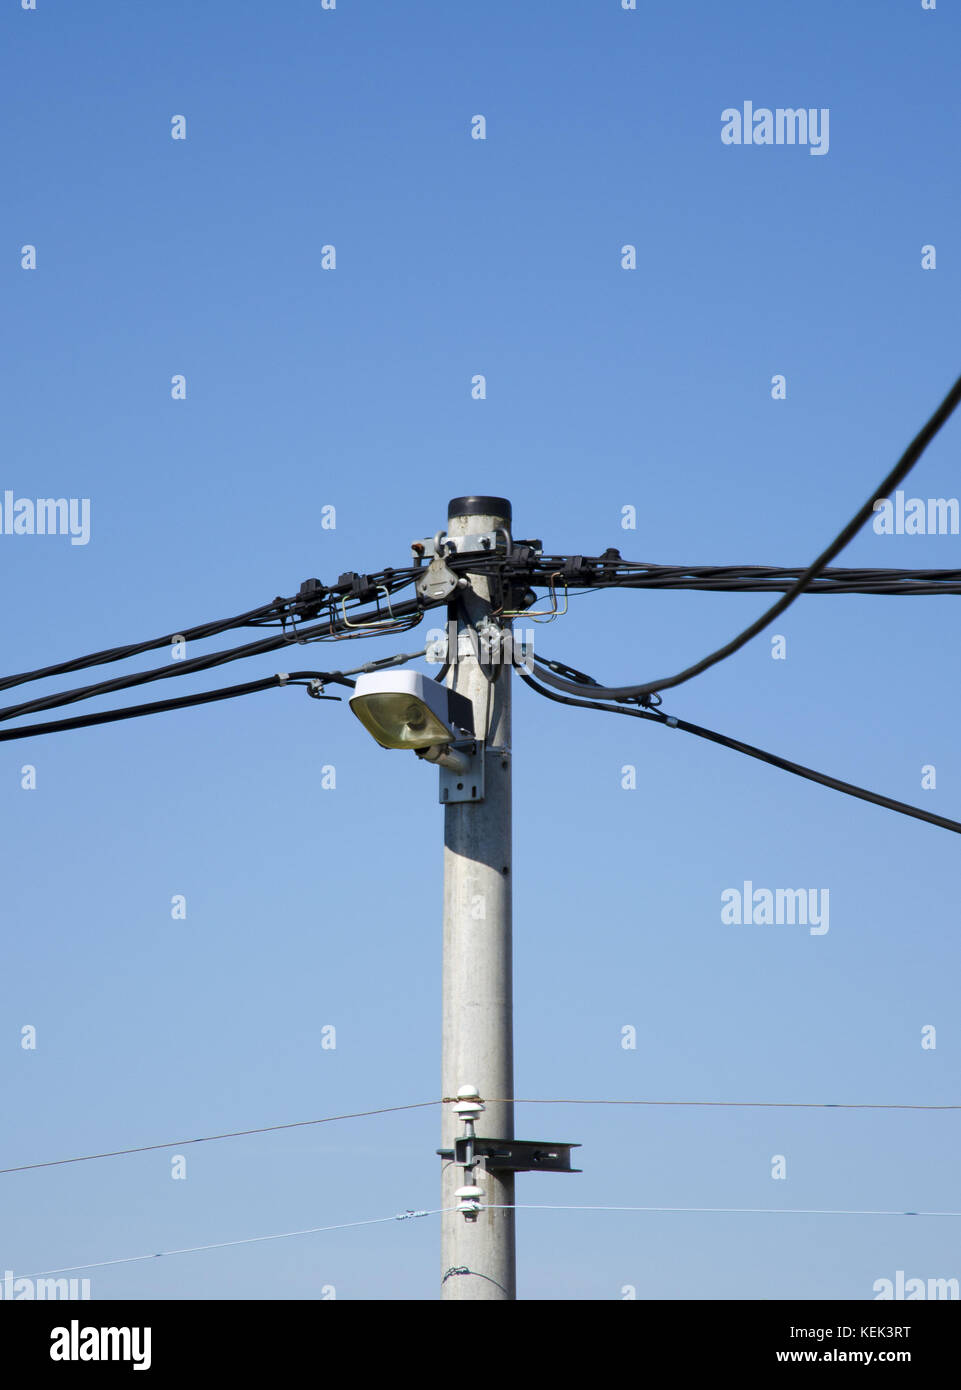 Telephone Power Wire Cables On Stock Photos & Telephone Power Wire ...